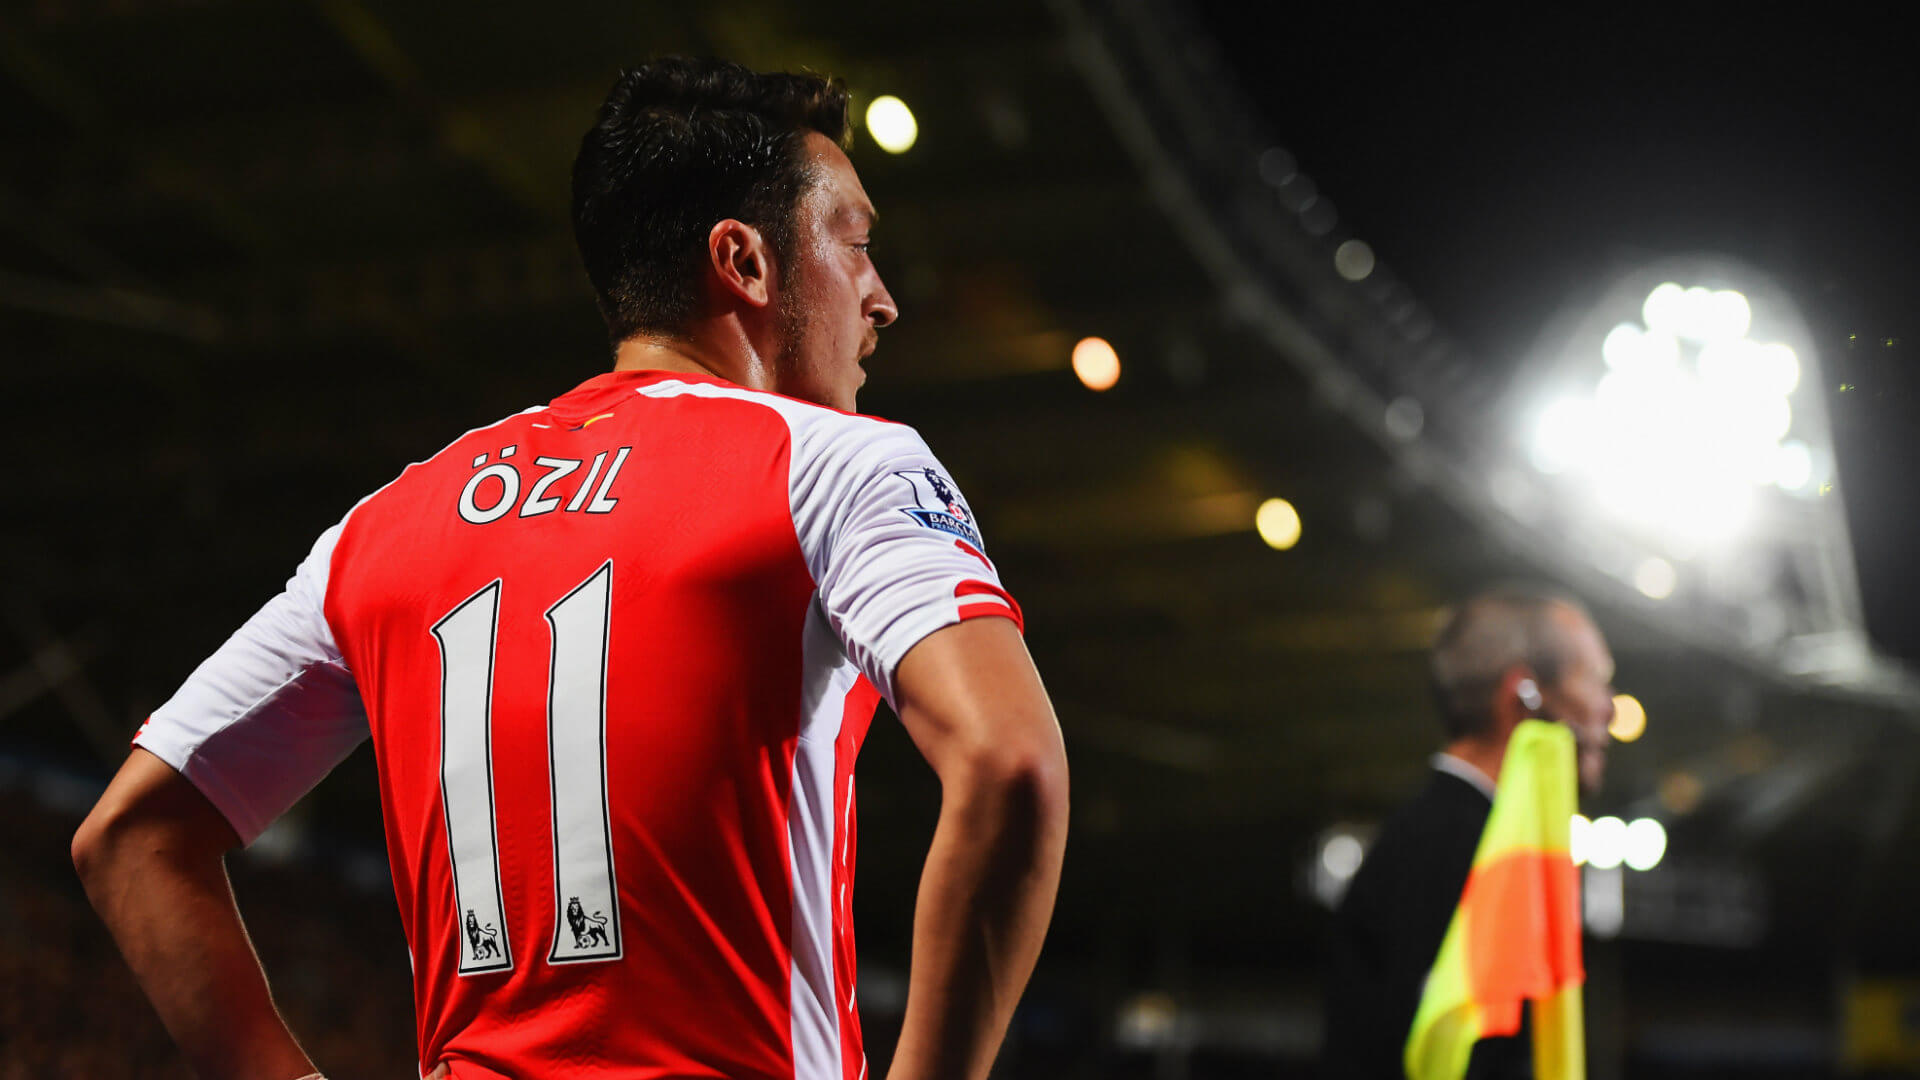 BREAKING NEWS : Arsenal Officially Confirm Mesut Ozil